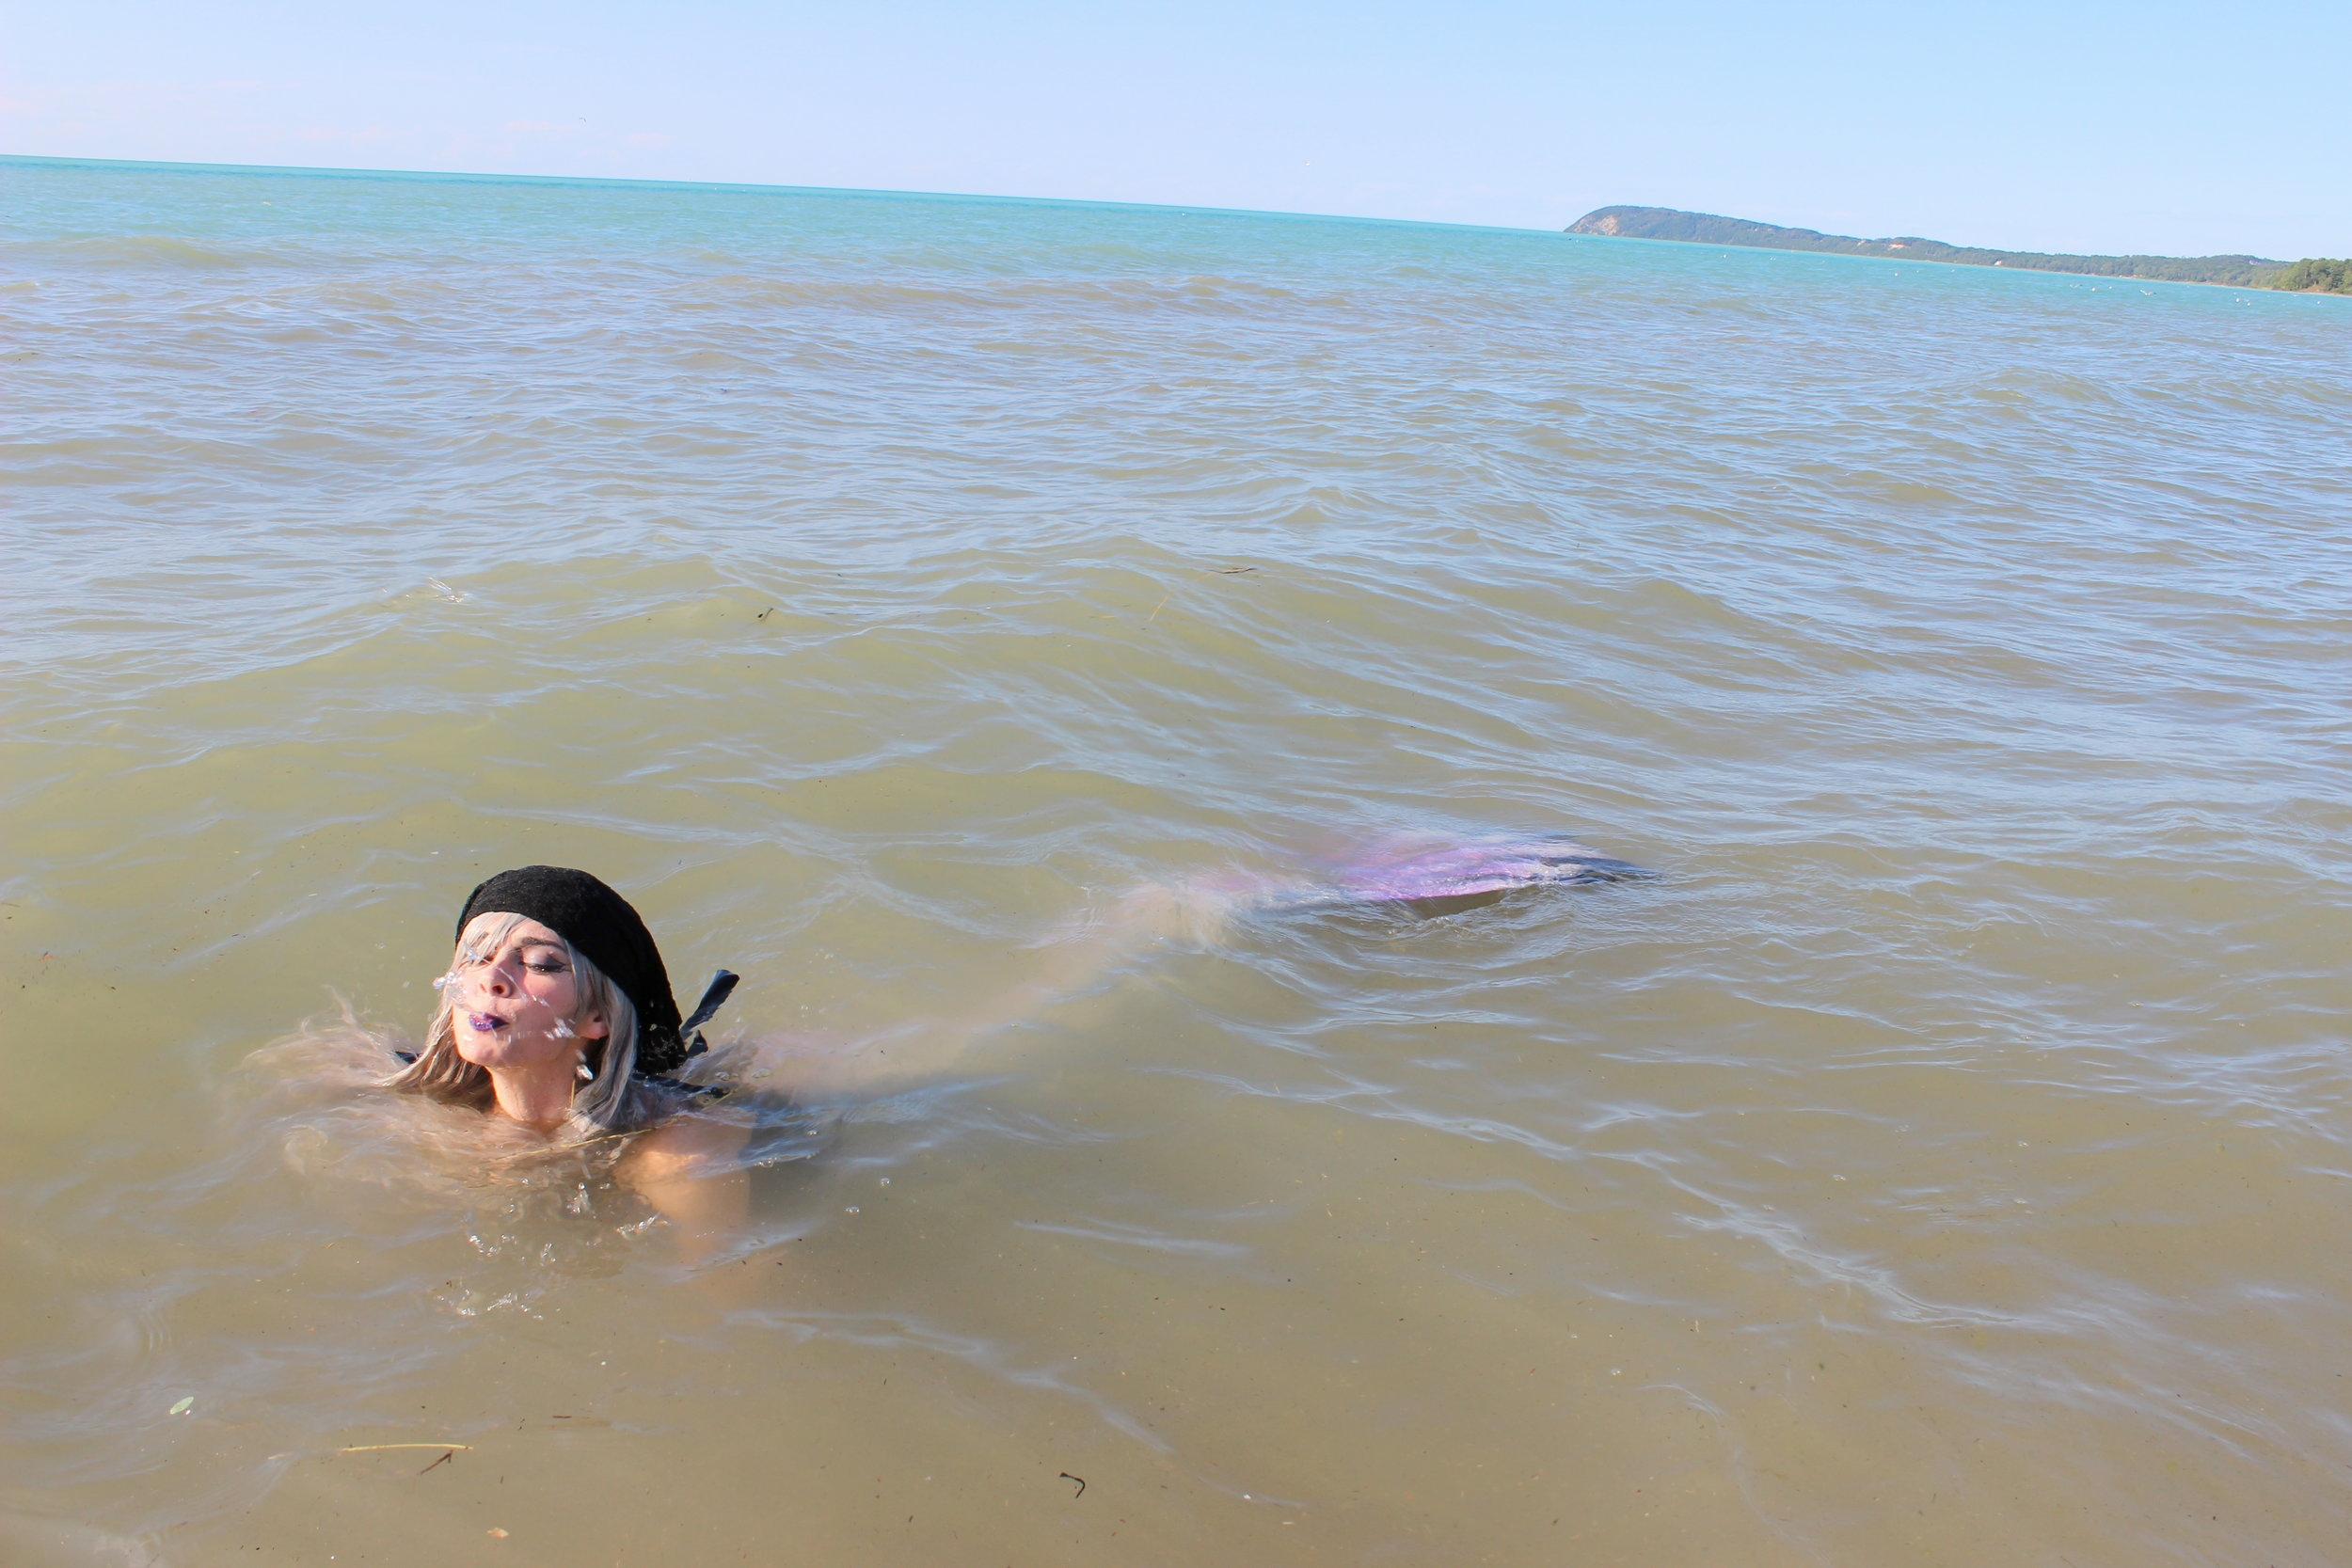 Mermaids spitting water out of their mouth: Mermaid Phantom spitting nasty lake-water out of her mouth. Yuck!